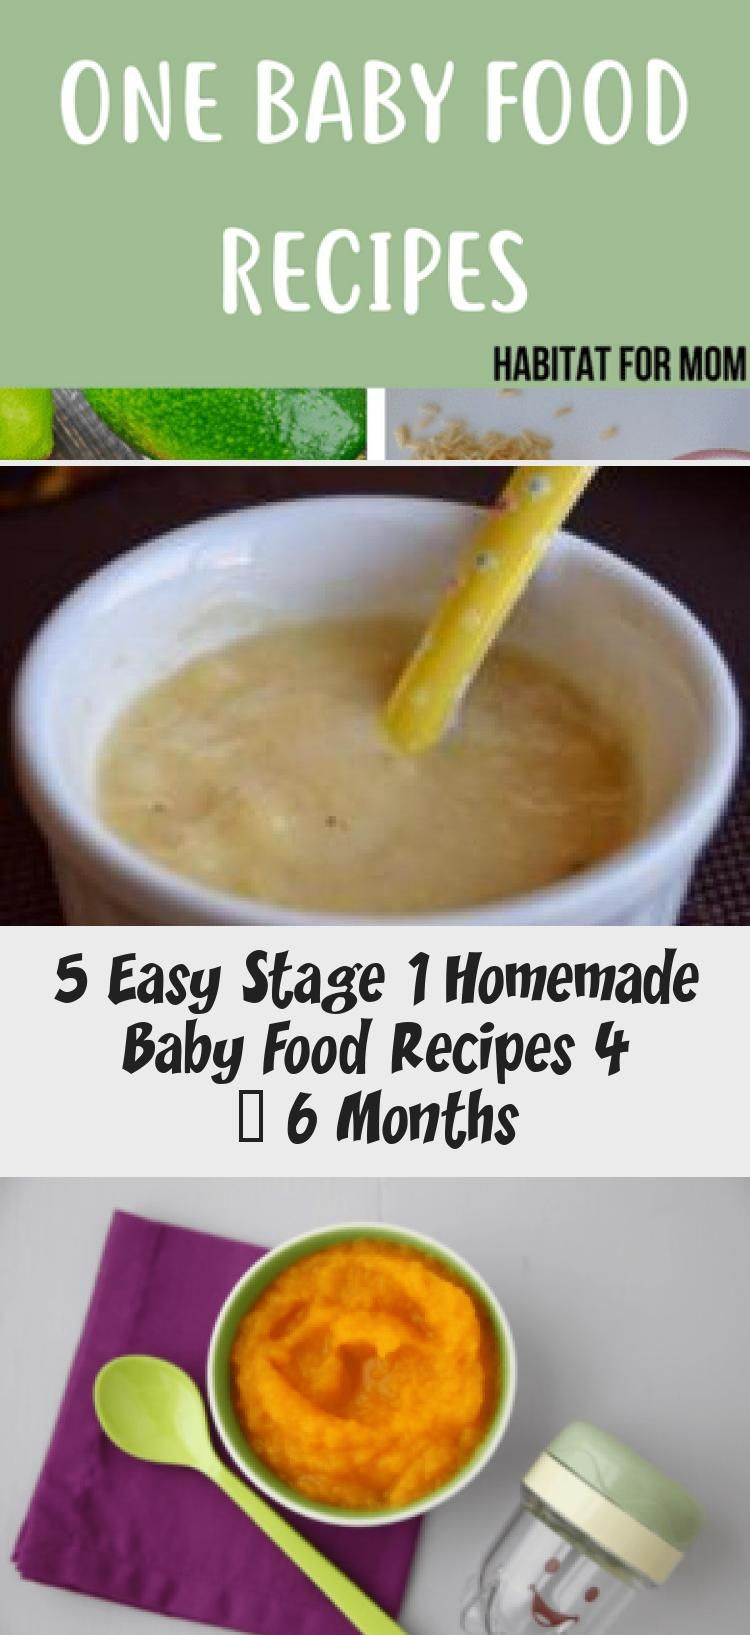 5 Easy Stage 1 Homemade Baby Food Recipes 4 - 6 Months in ...